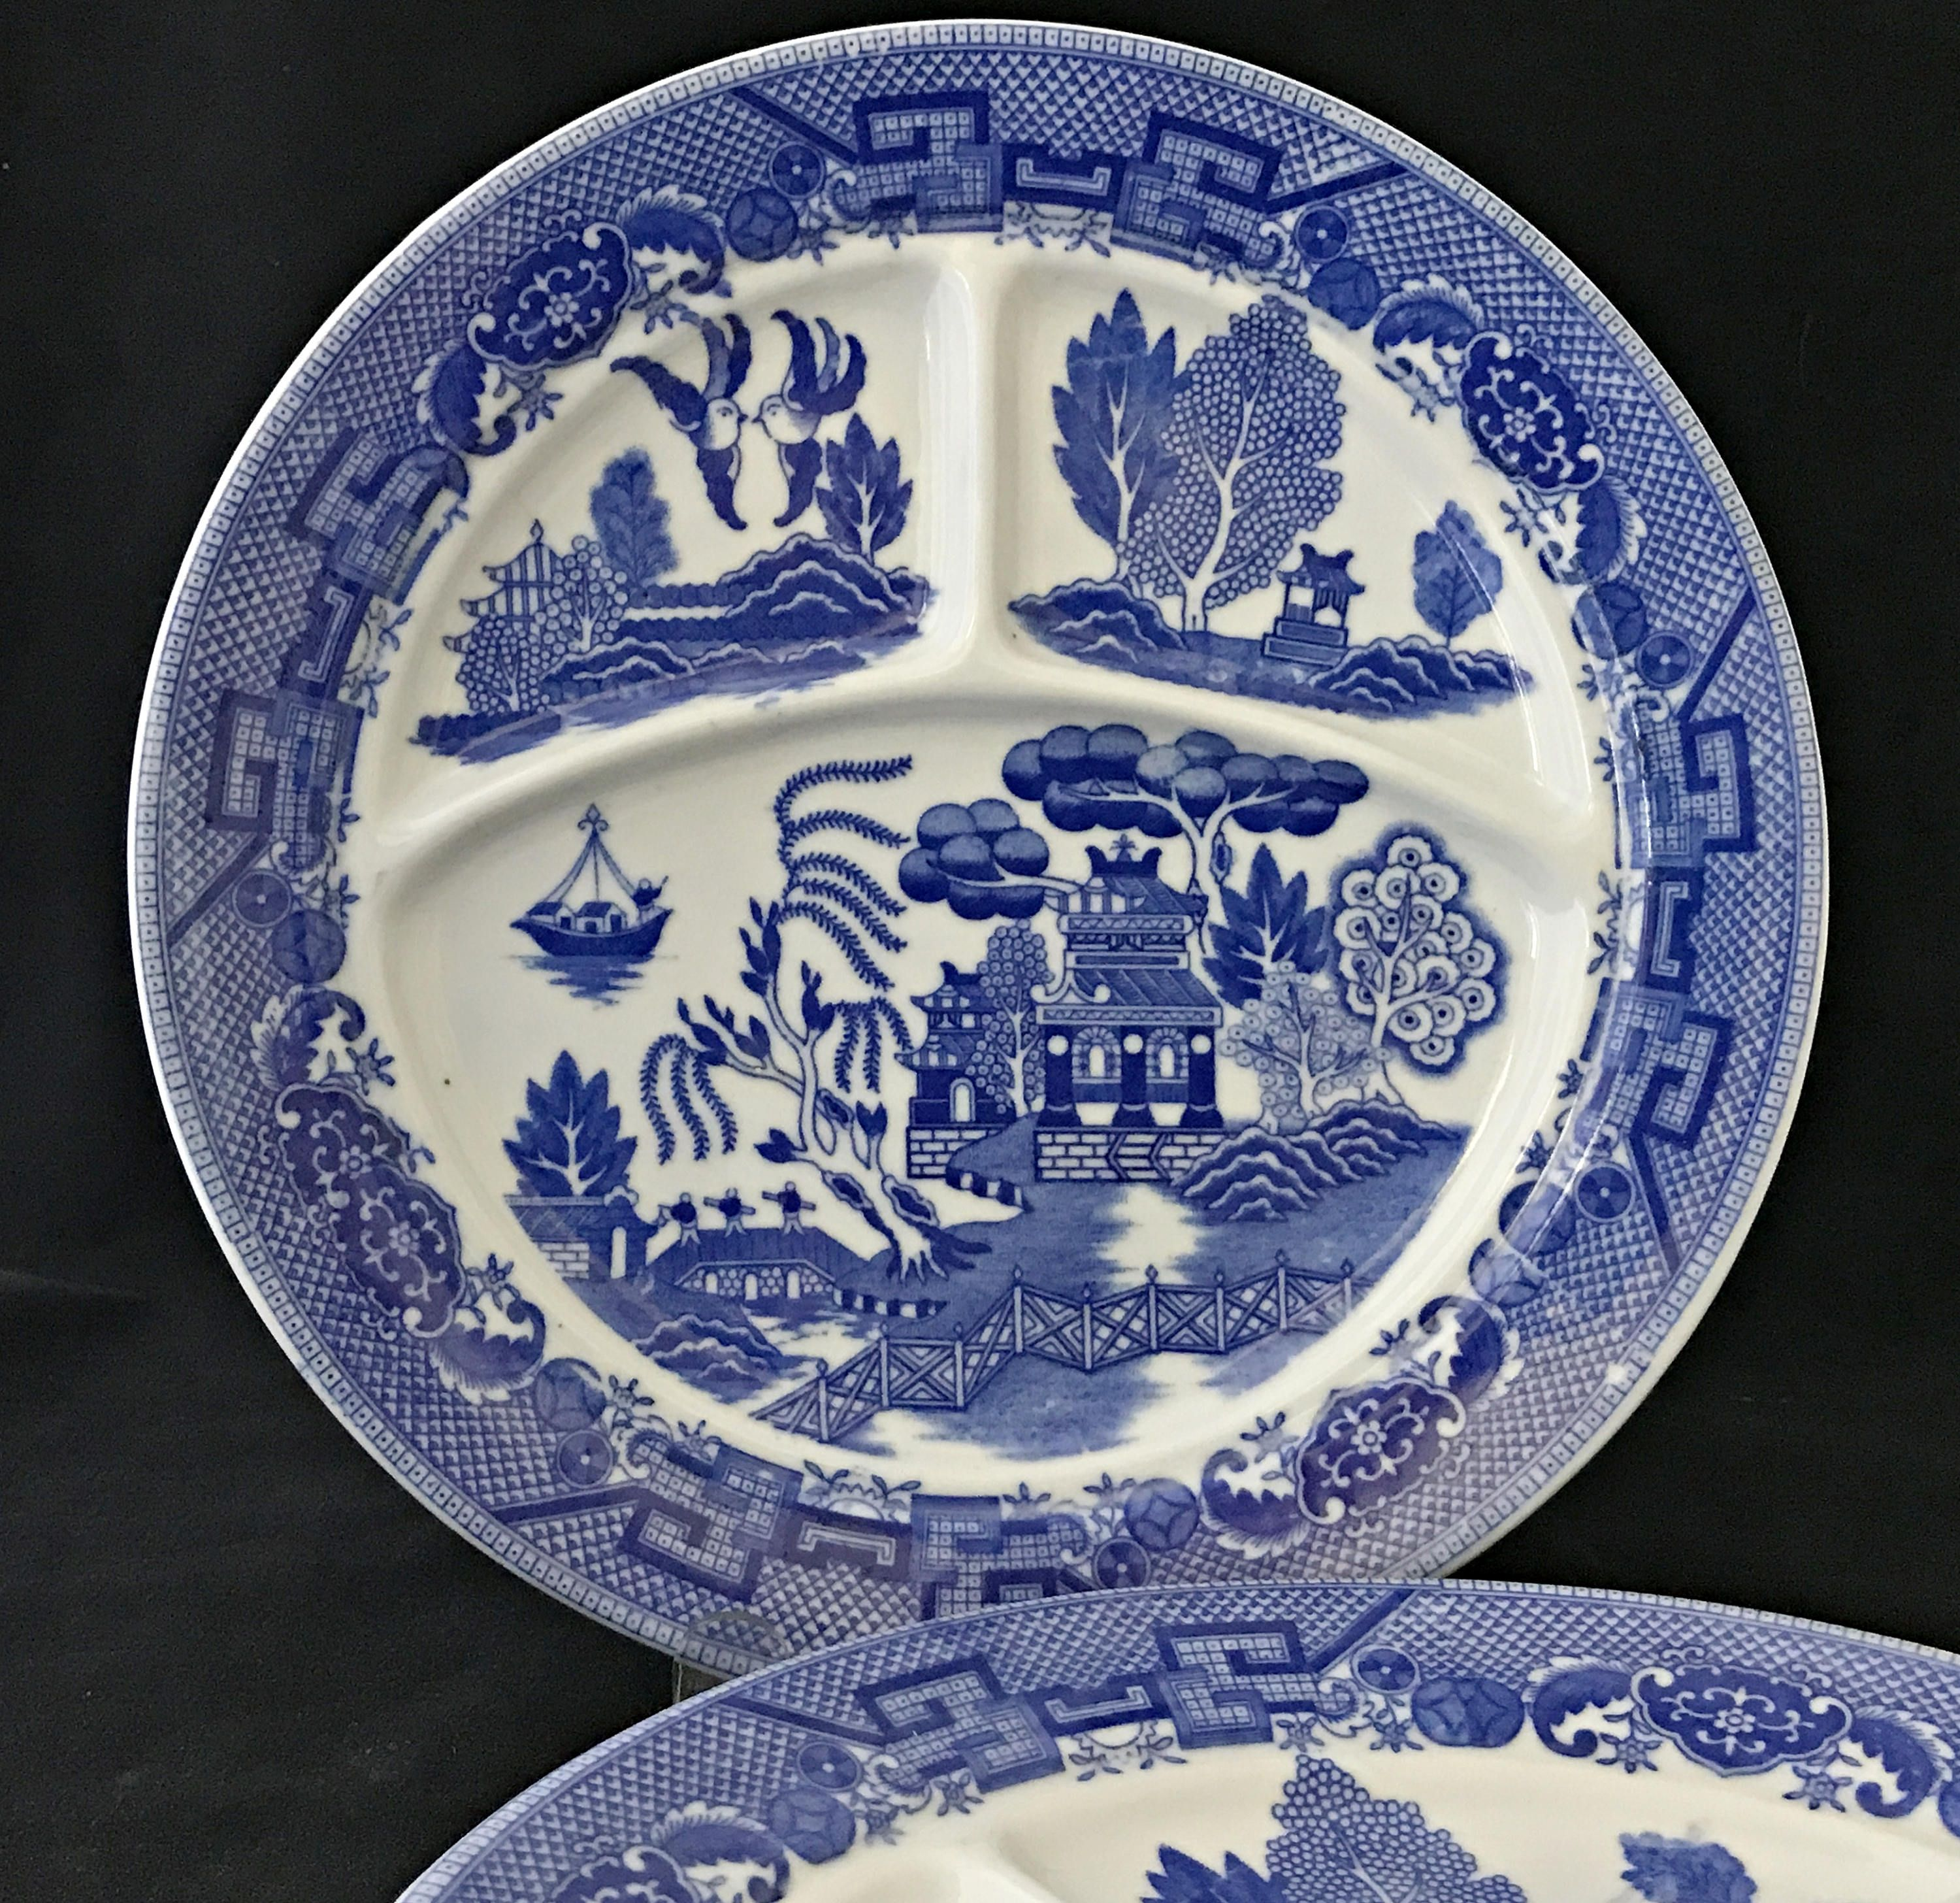 2 Vintage Blue Willow Grill Plates Divided Plates Restaurant Ware Made In Japan By Anniesoldstuff On Etsy 16 Ann Blue Willow China Grill Plate Blue Willow